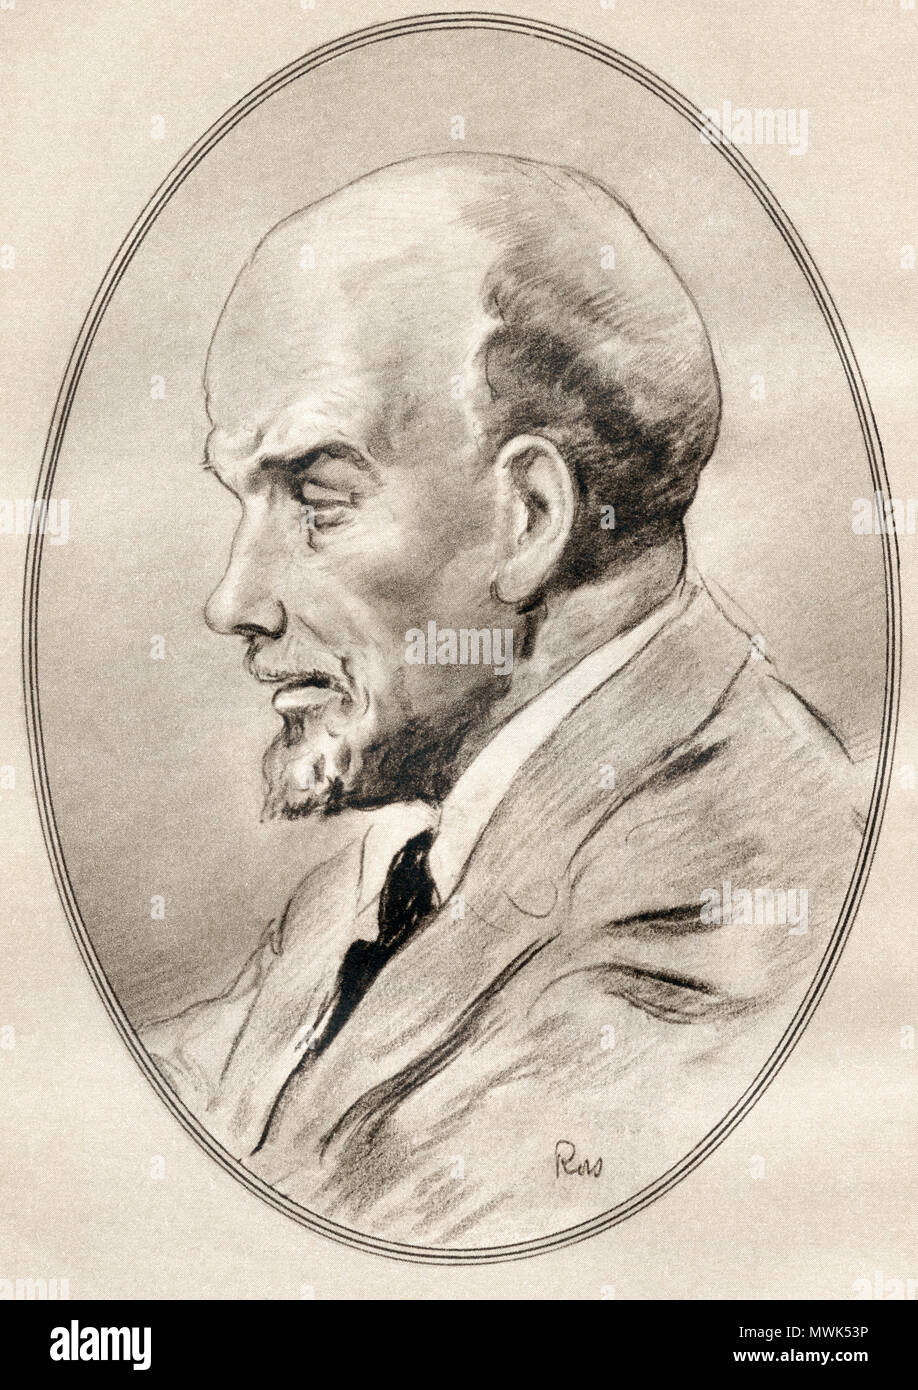 Vladimir Ilyich Ulyanov, aka Lenin, 1870 - 1924.  Russian communist revolutionary, politician and political theorist.  Illustration by Gordon Ross, American artist and illustrator (1873-1946), from Living Biographies of Famous Men. - Stock Image